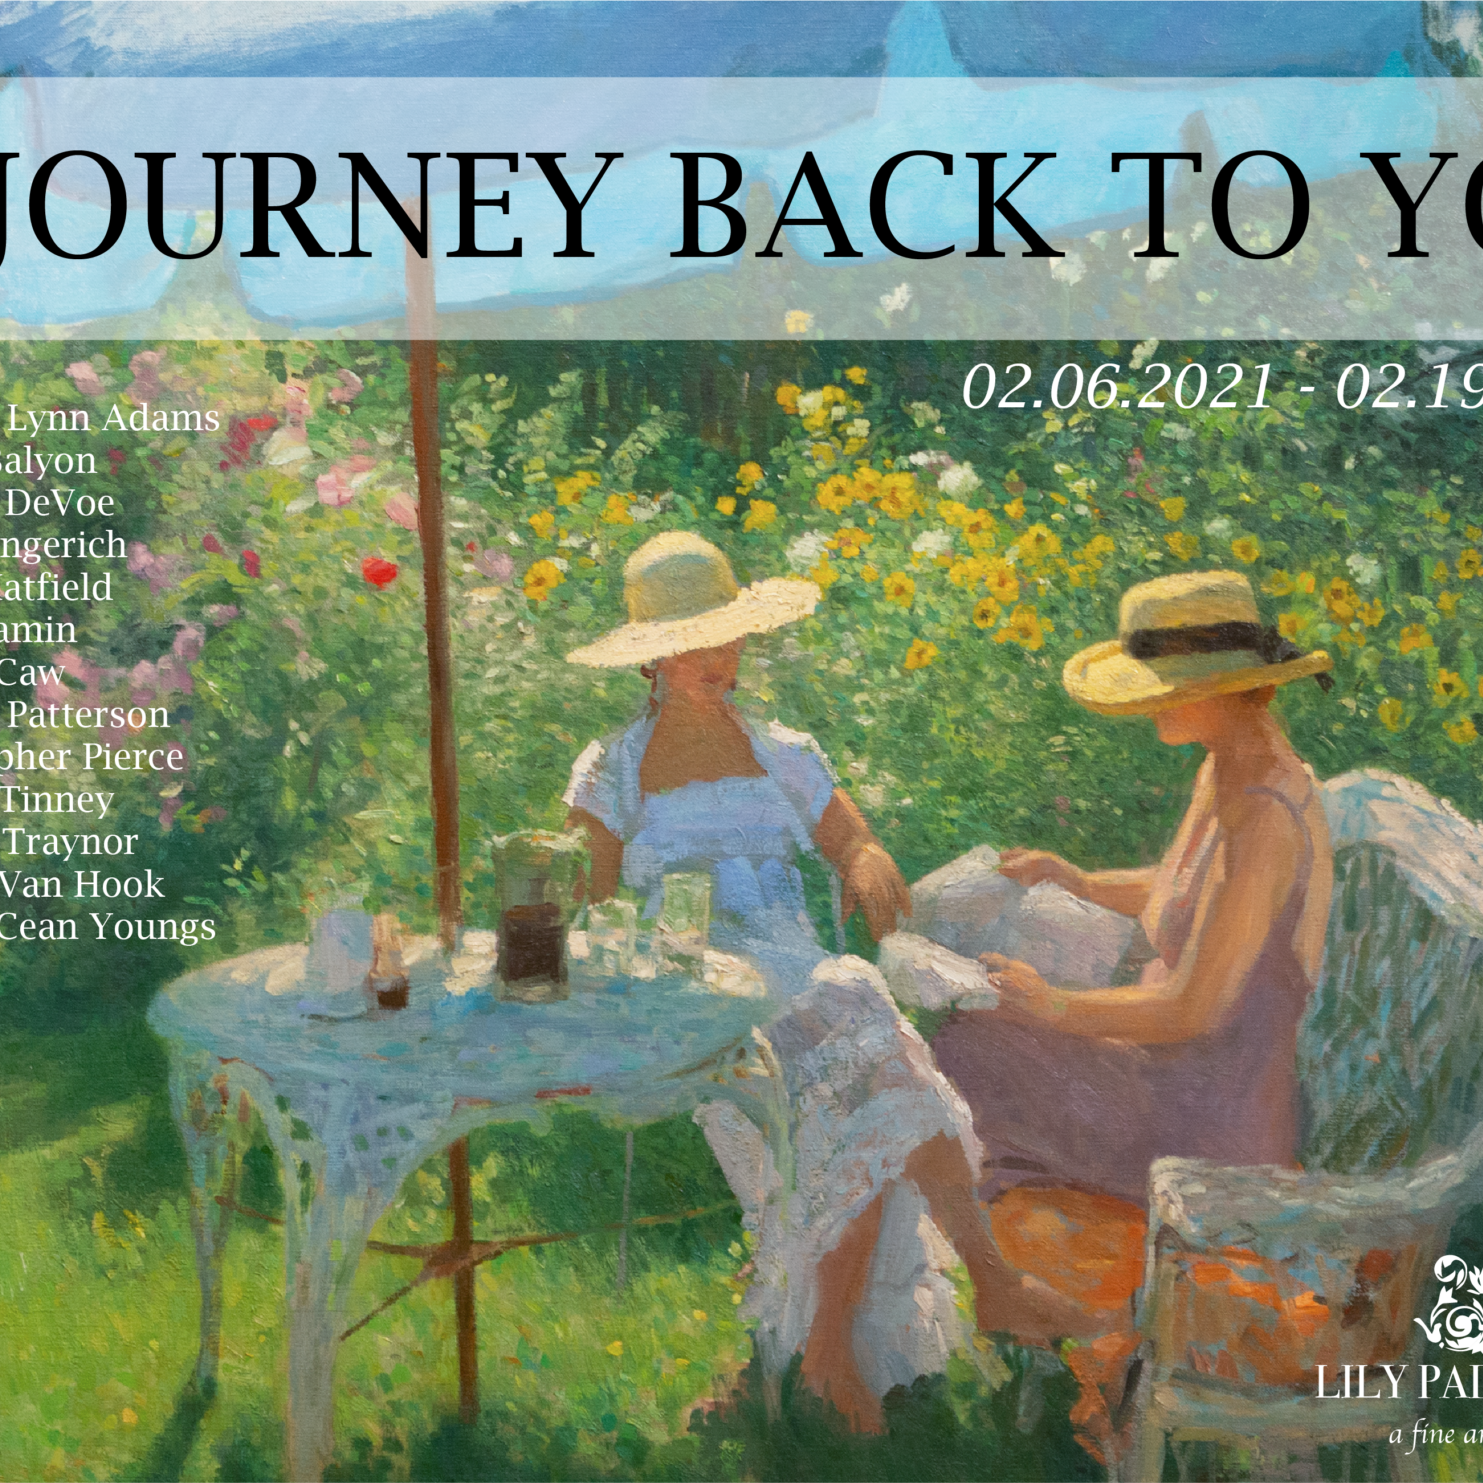 A_Journey_Back_To_You